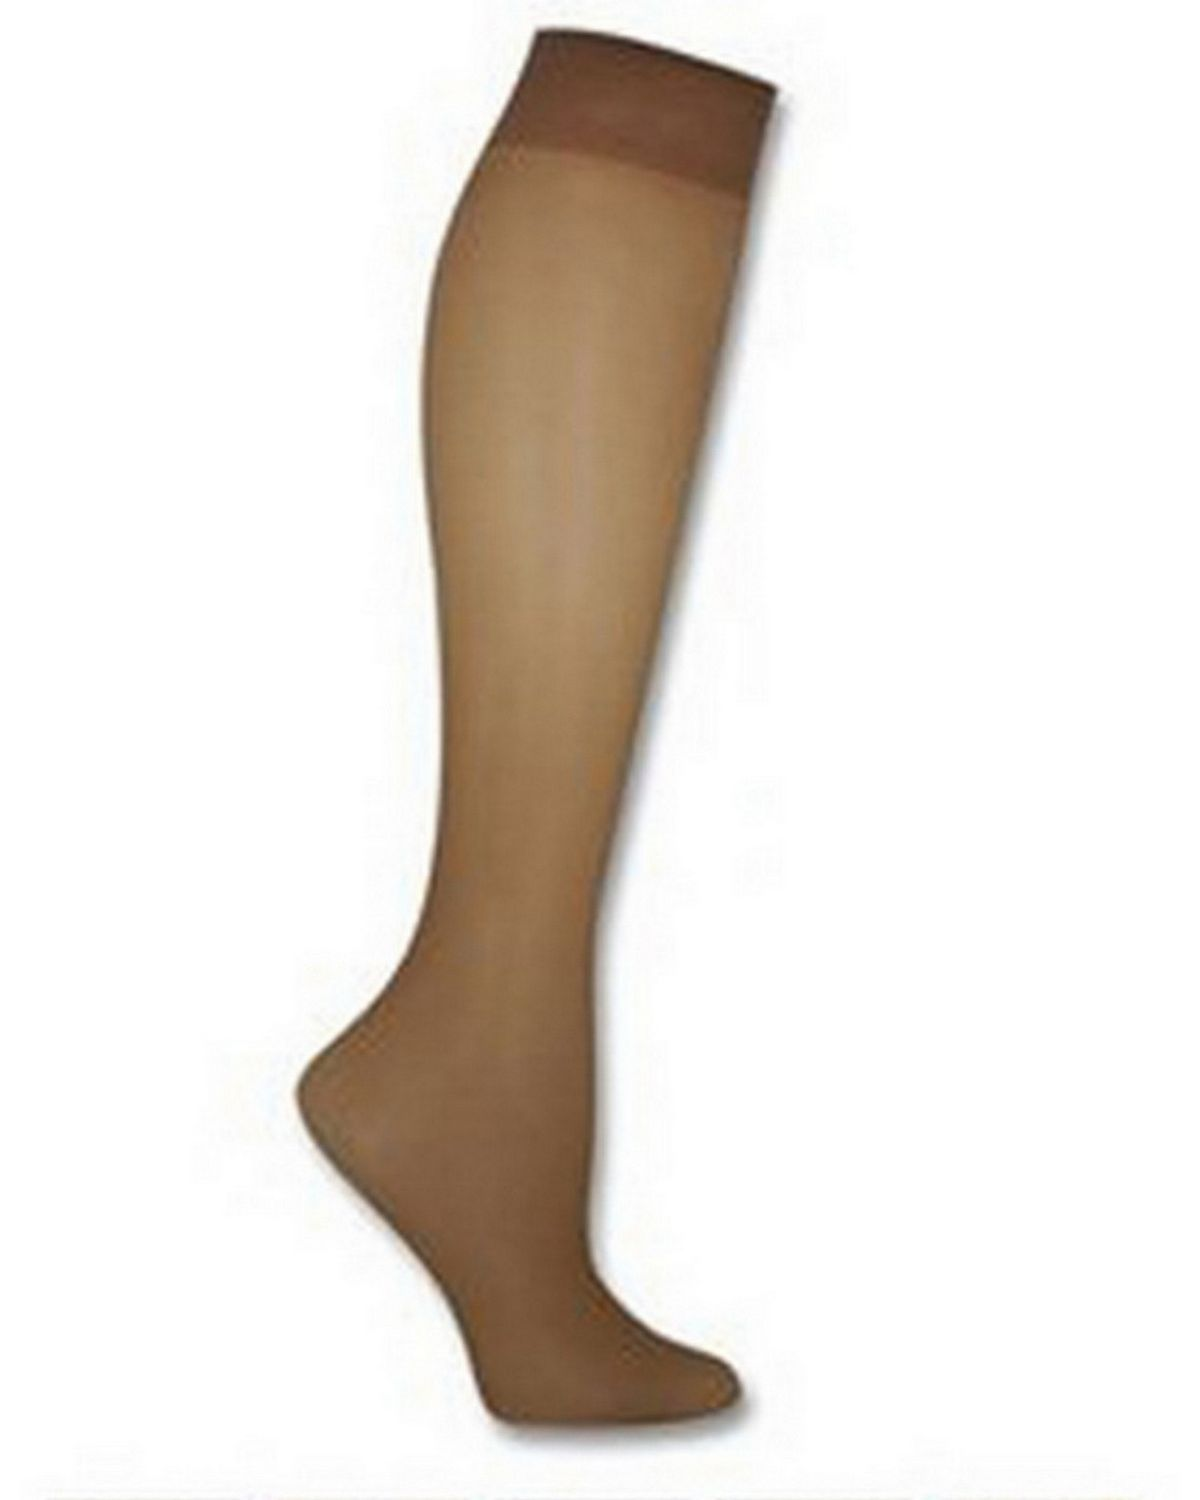 Hanes 00P19 Women's Silk Reflections Plus Silky Sheer Knee High ET - Pearl - One Size #silk